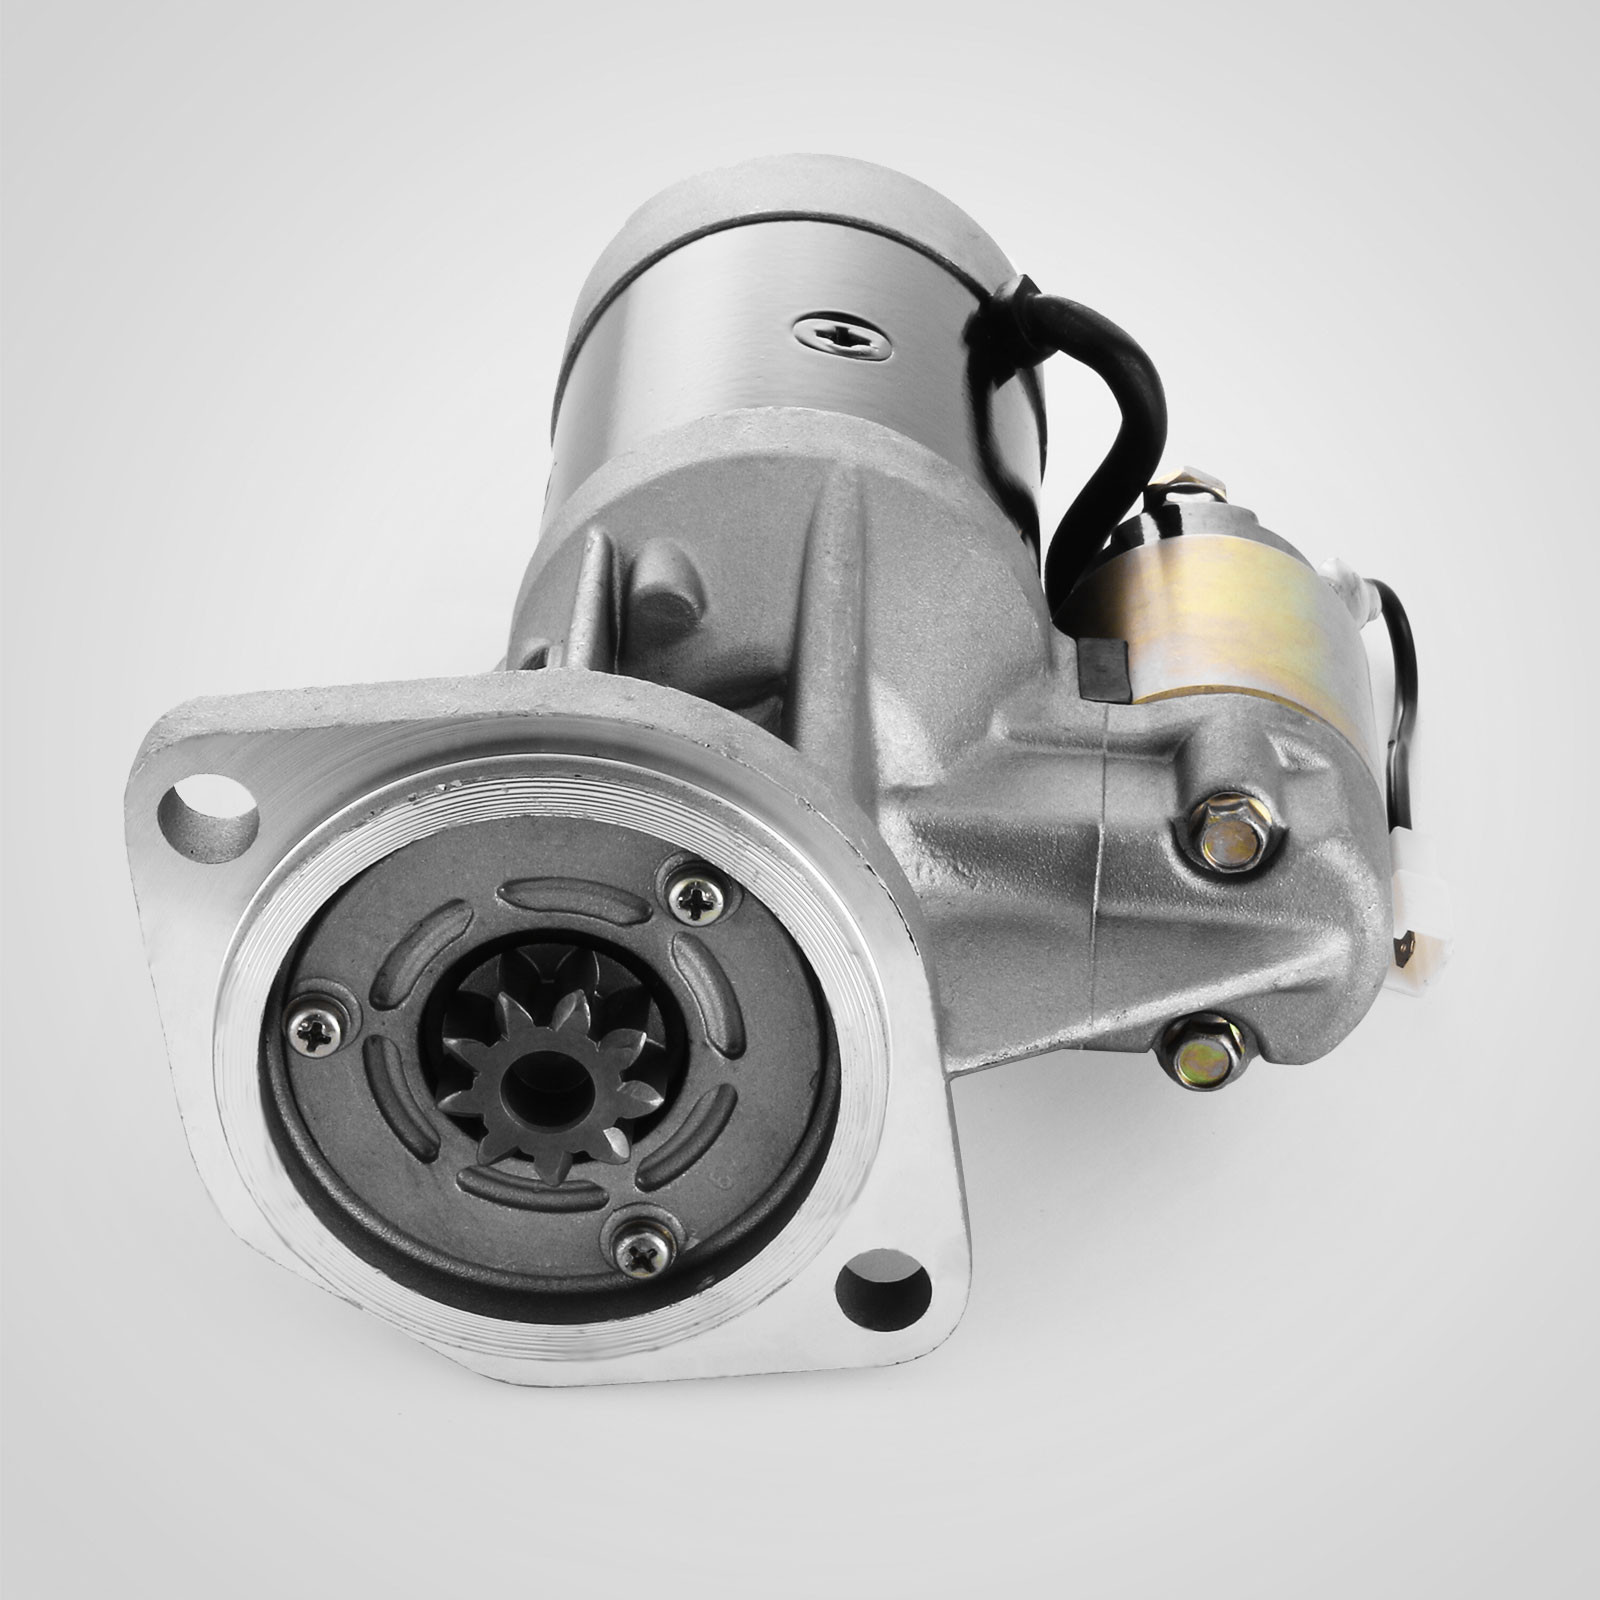 Replace Starter Motor Holden Rodeo 1996 Isuzu Location For Tf 4wd Turbo 4ja1 4jb1 T 2 5l 8l